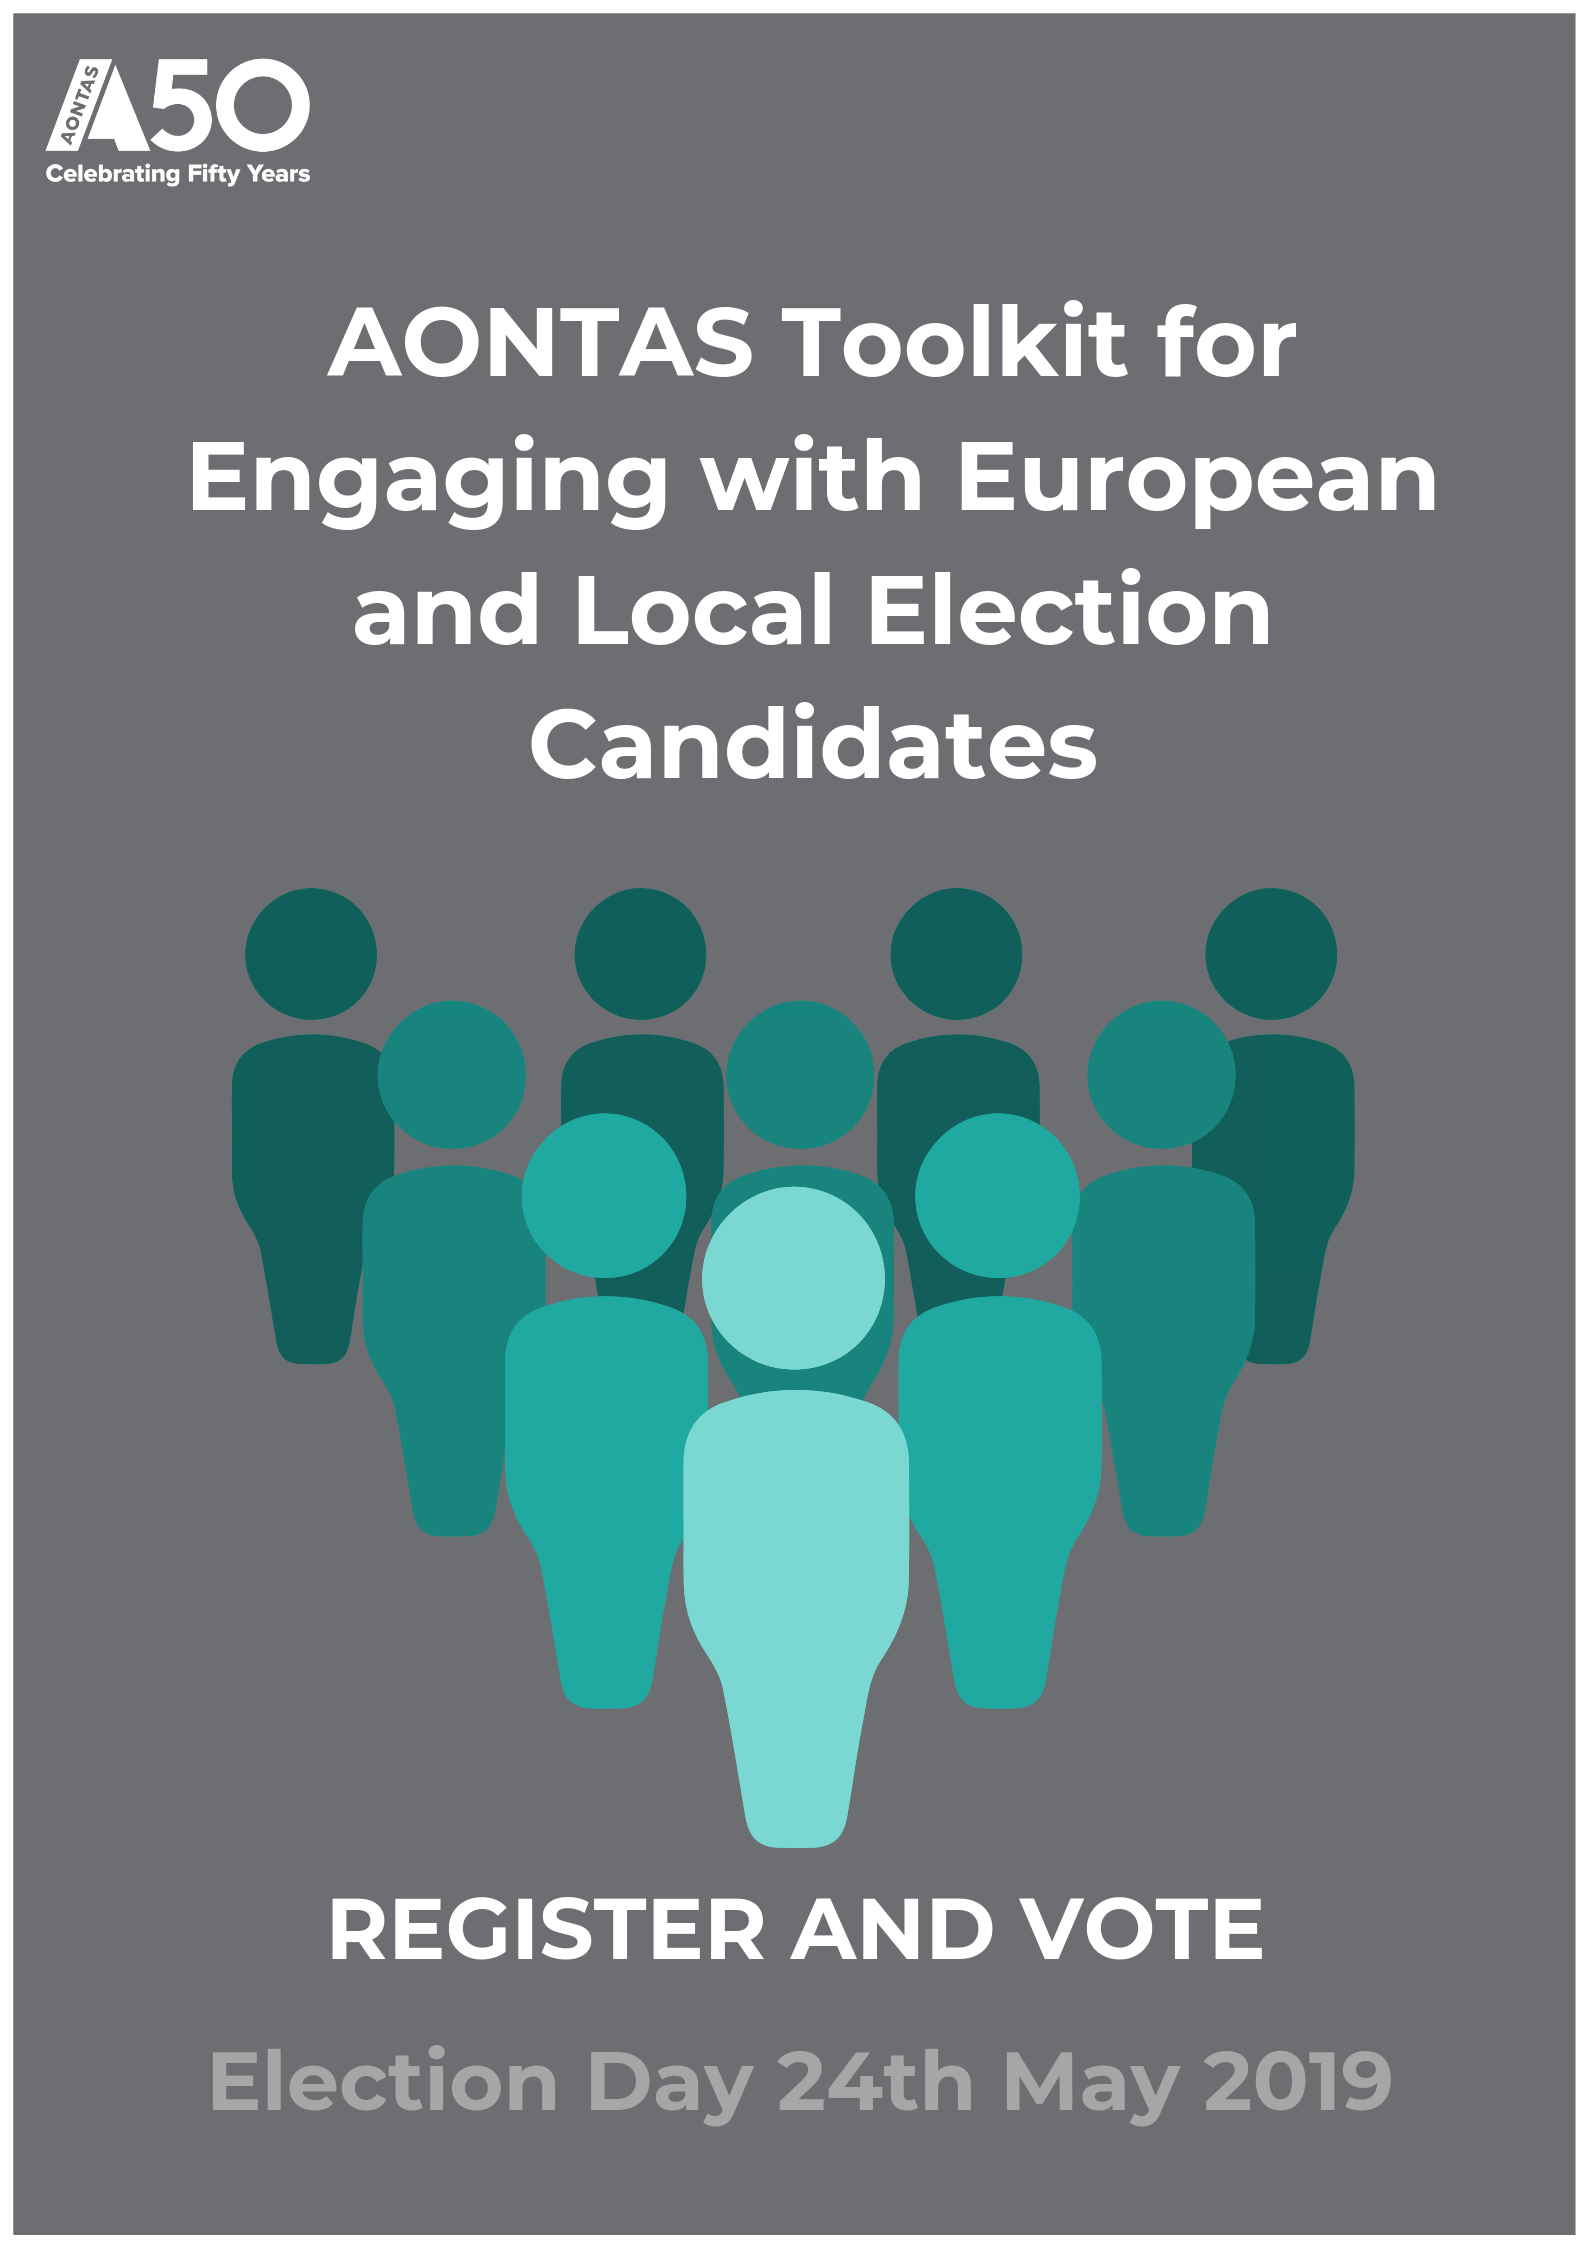 AONTAS Toolkit for Engaging with European and Local Election Candidates pdf